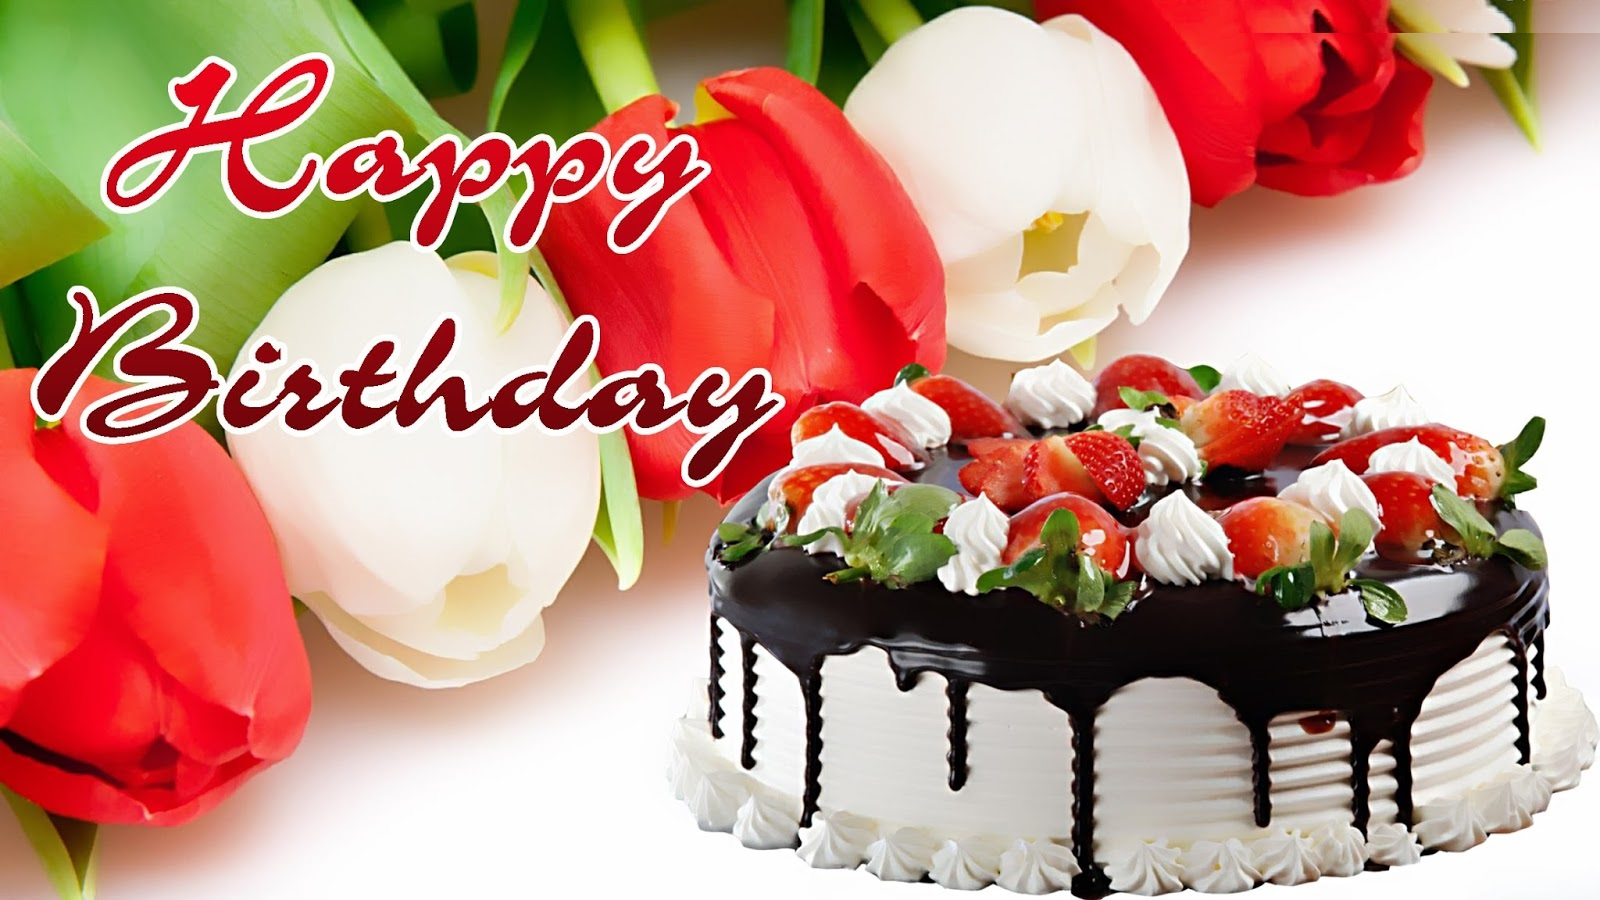 Happy Birthday HD Wallpaper Download